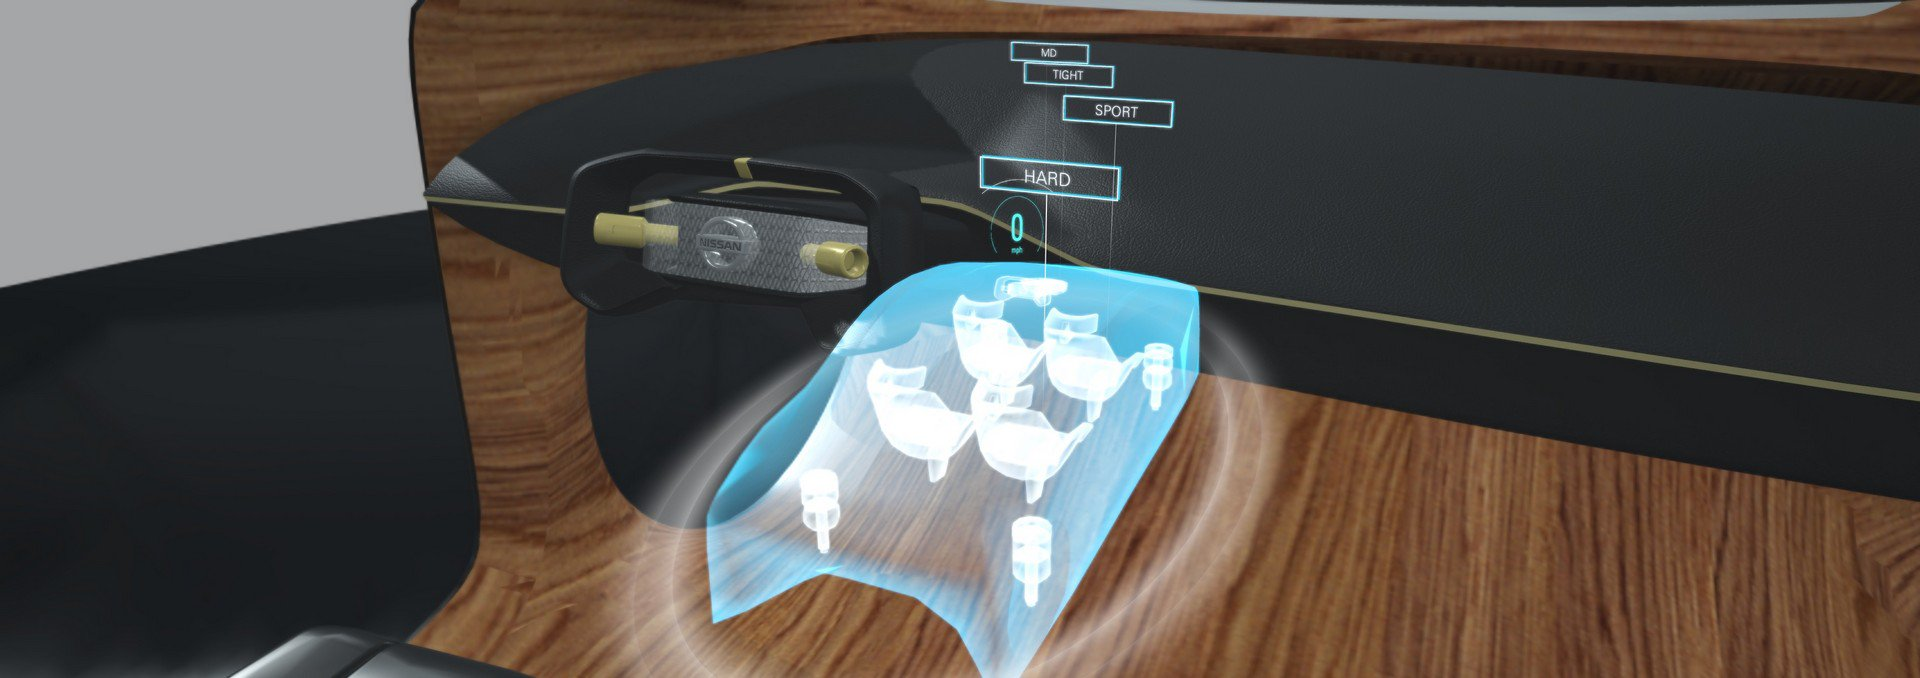 Nissan Invisible-to-Visible technology concept (5)